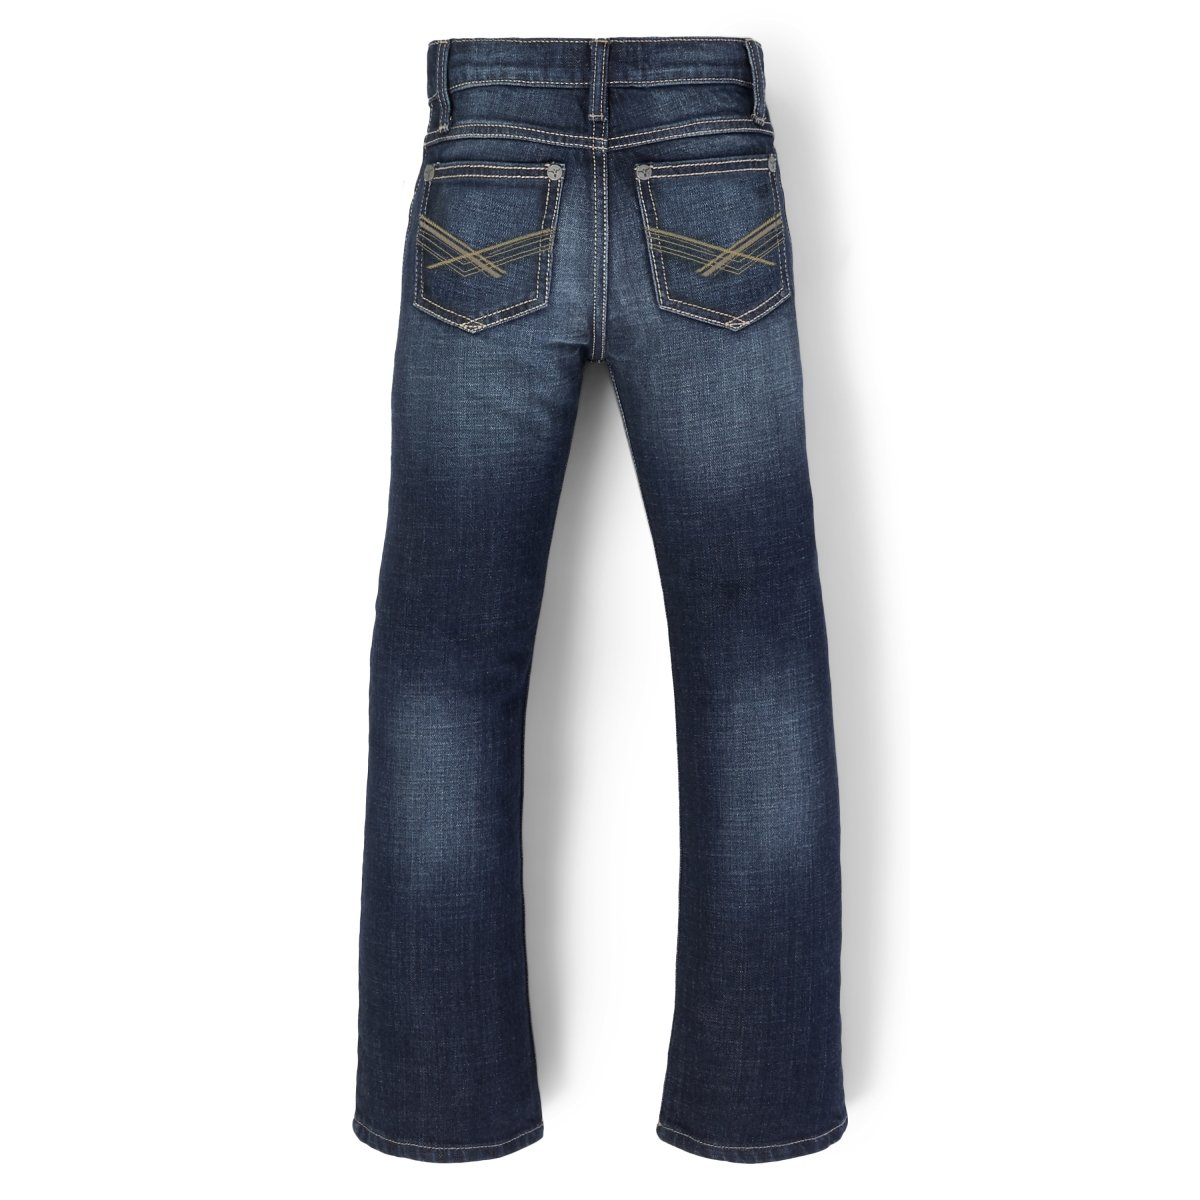 Boys 20X 42 Vintage Boot Cut from Wrangler